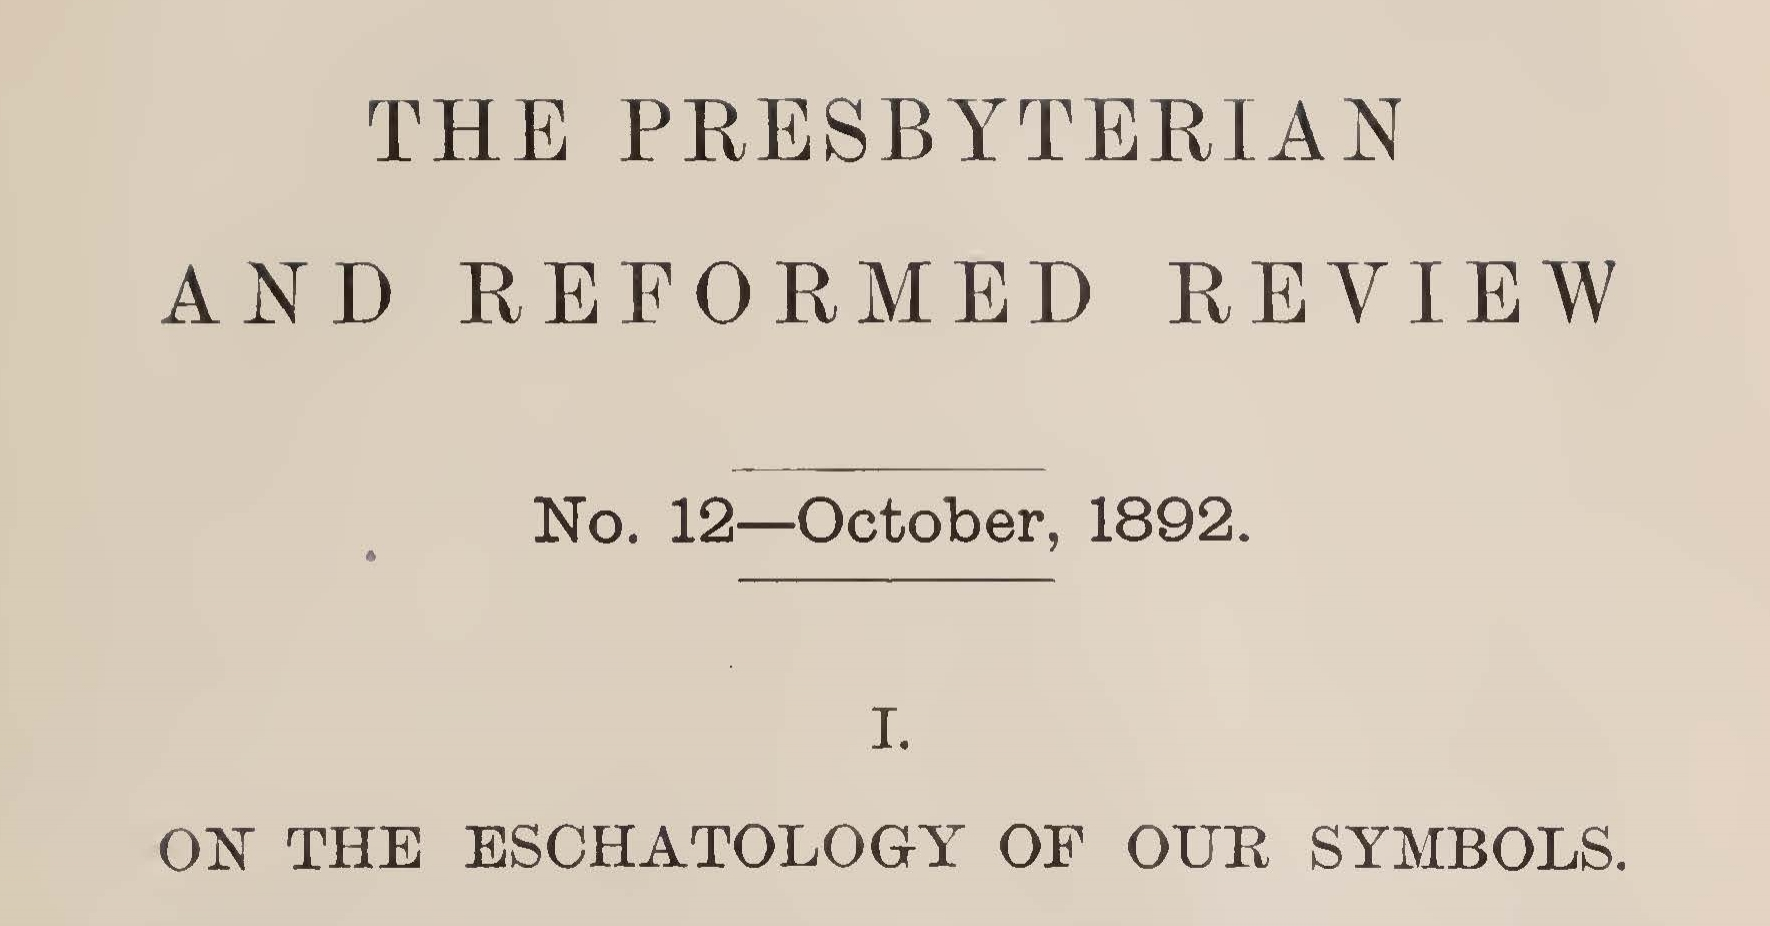 Morris, Edward Dafydd, On the Eschatology of Our Symbols Title Page.jpg